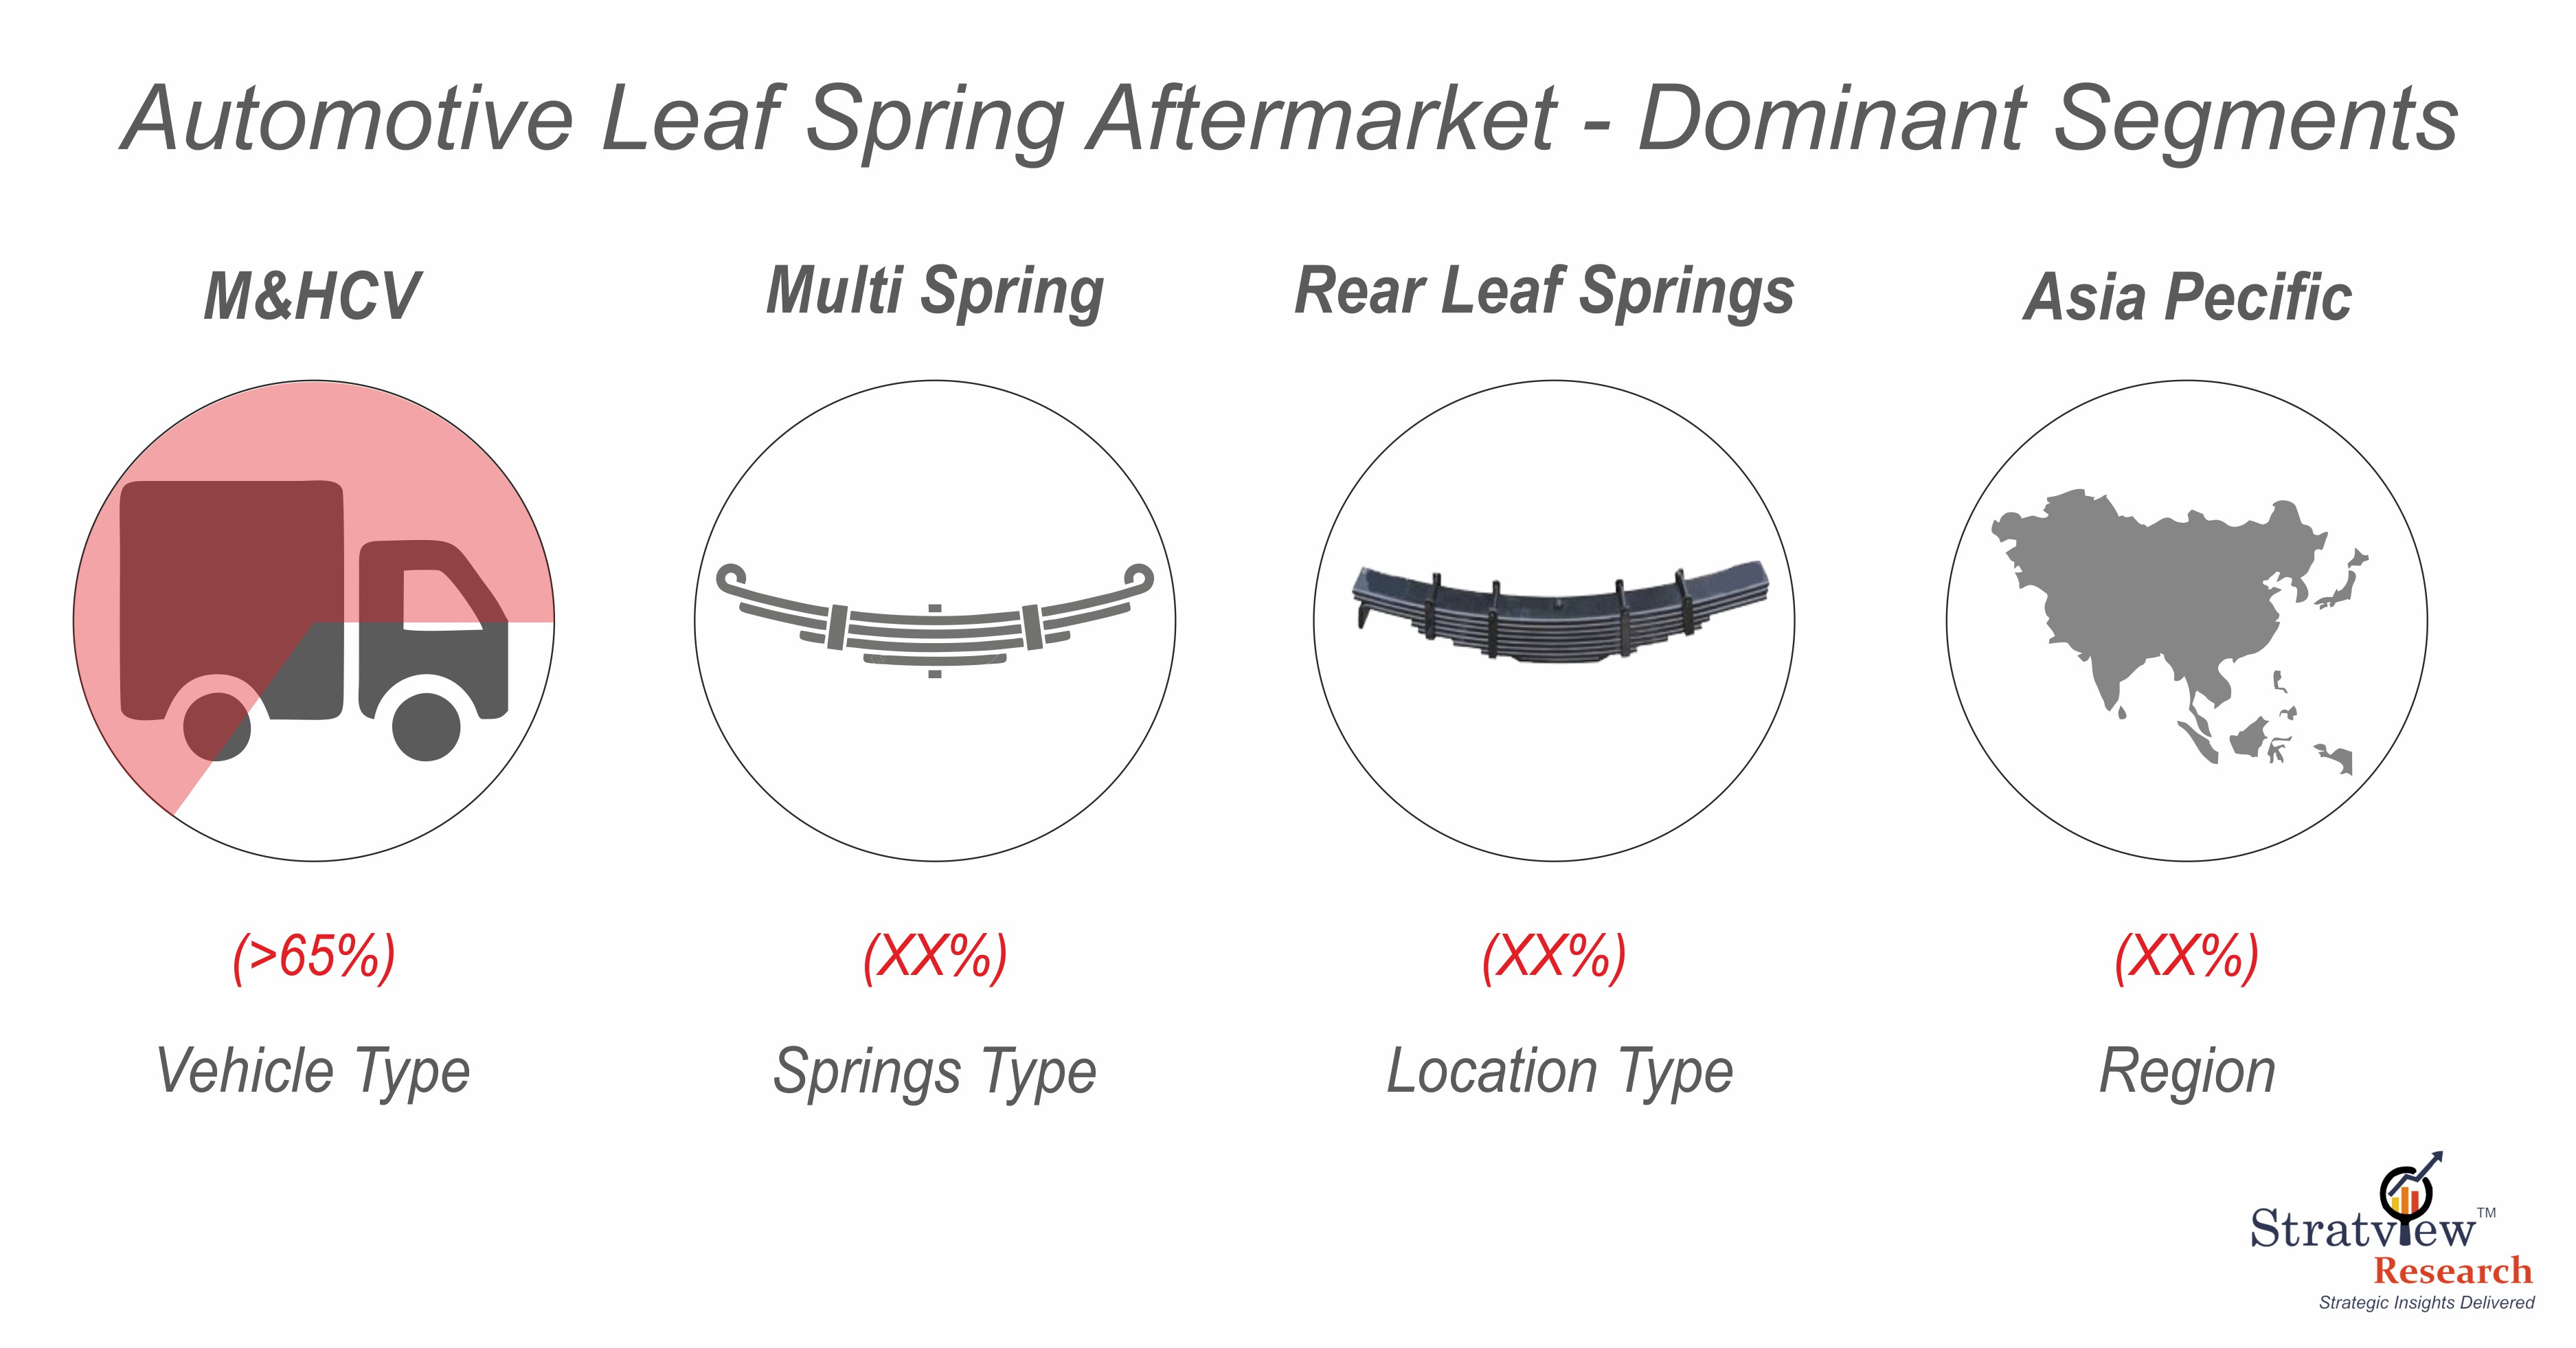 Automotive Leaf Spring Aftermarket Segmentation.jpg